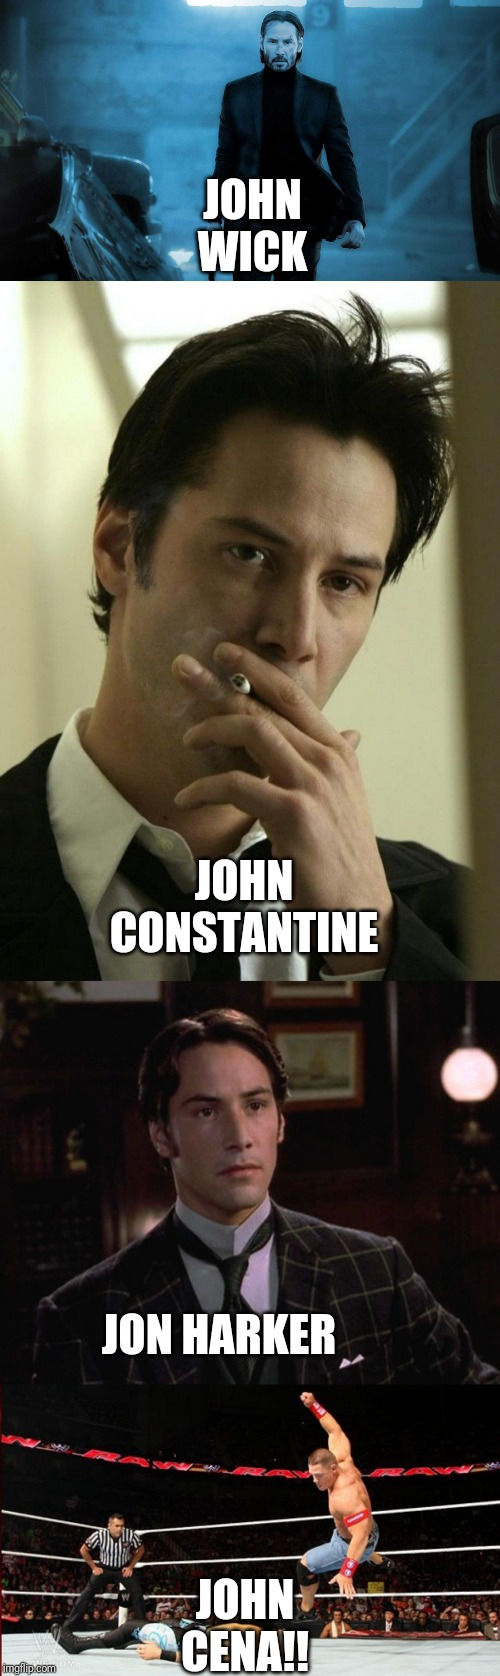 The many johns of keanu | JOHN WICK JOHN CENA!! JOHN CONSTANTINE JON HARKER | image tagged in keanu reeves,john cena,funny | made w/ Imgflip meme maker